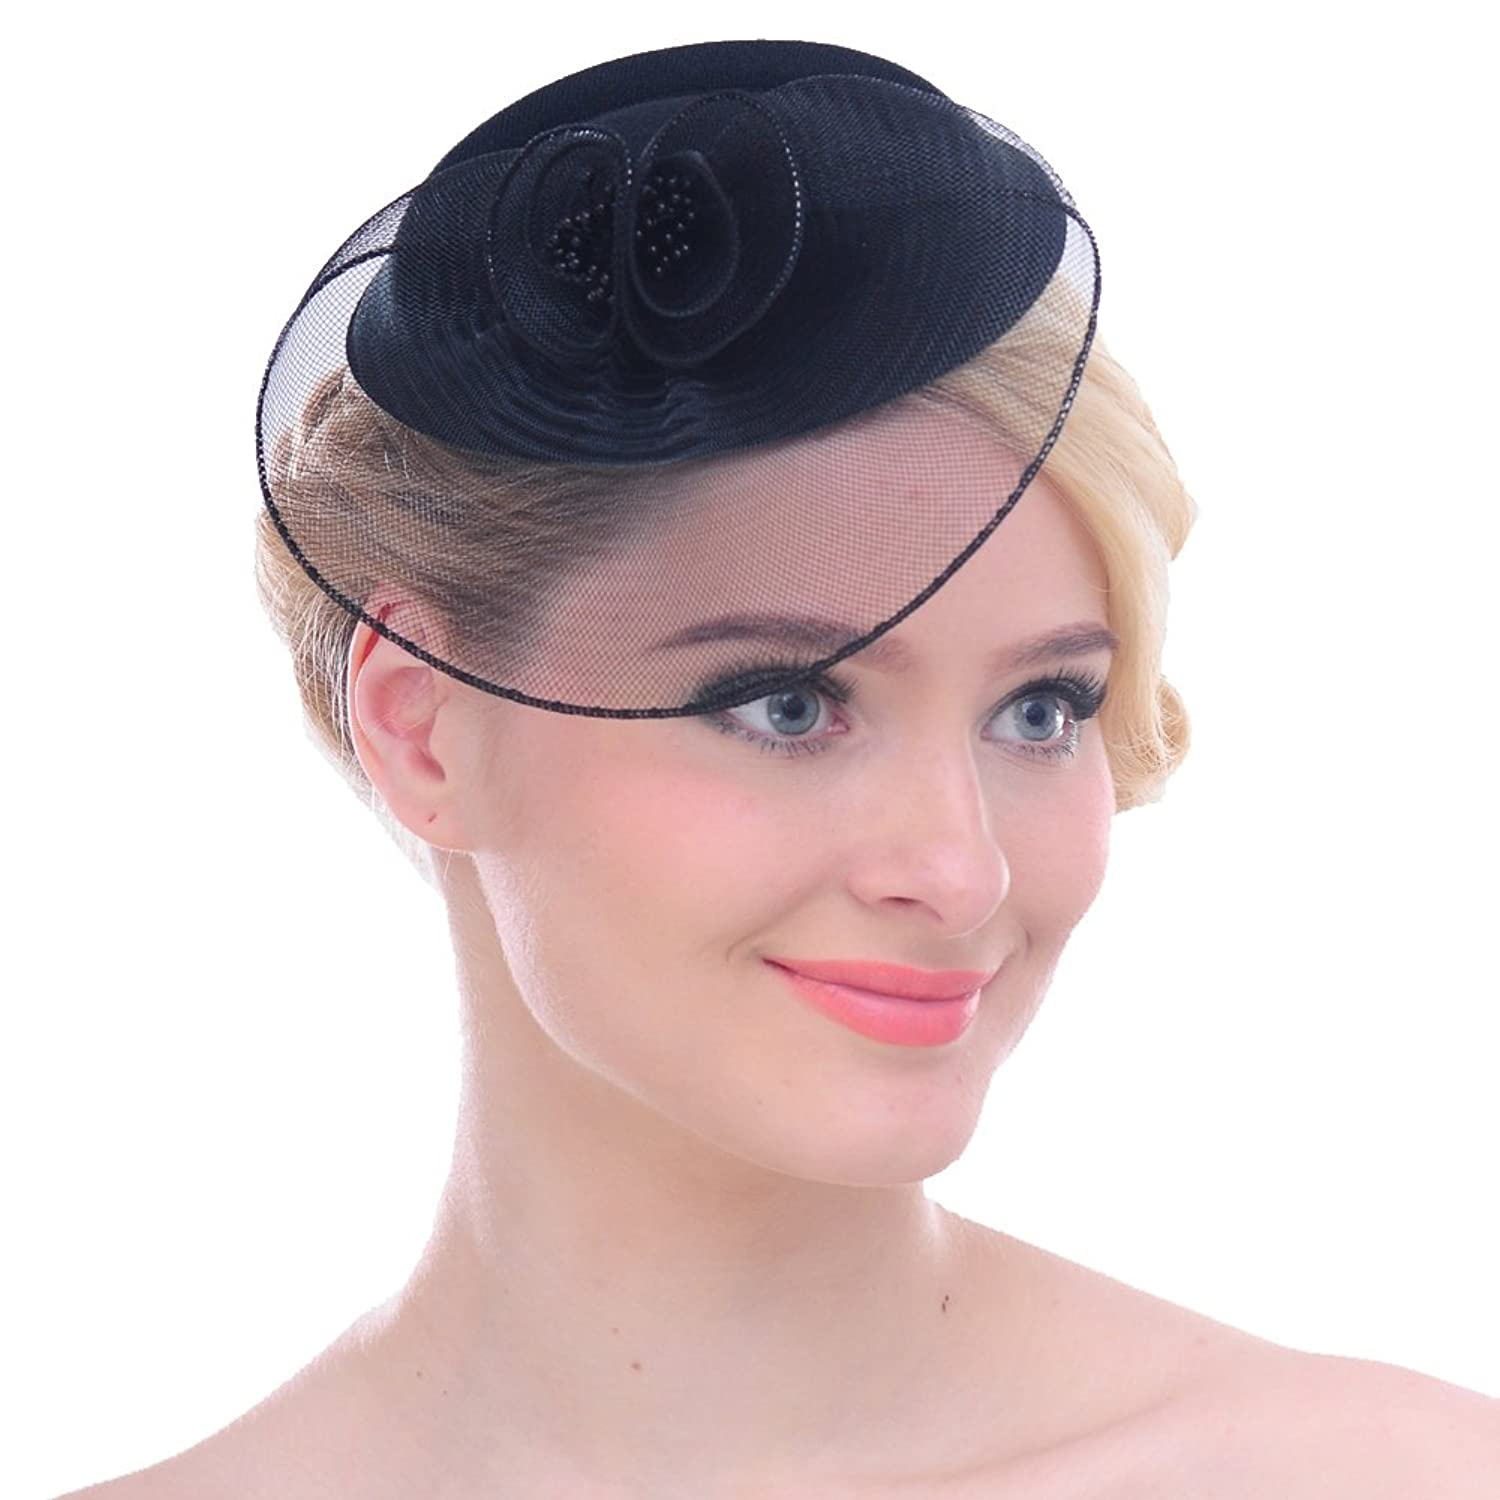 FAYBOX Vintage Mesh Wool Felt Pillbox Flower Women Fascinator Hat Hair Clip Blk At Amazon Womens Clothing Store